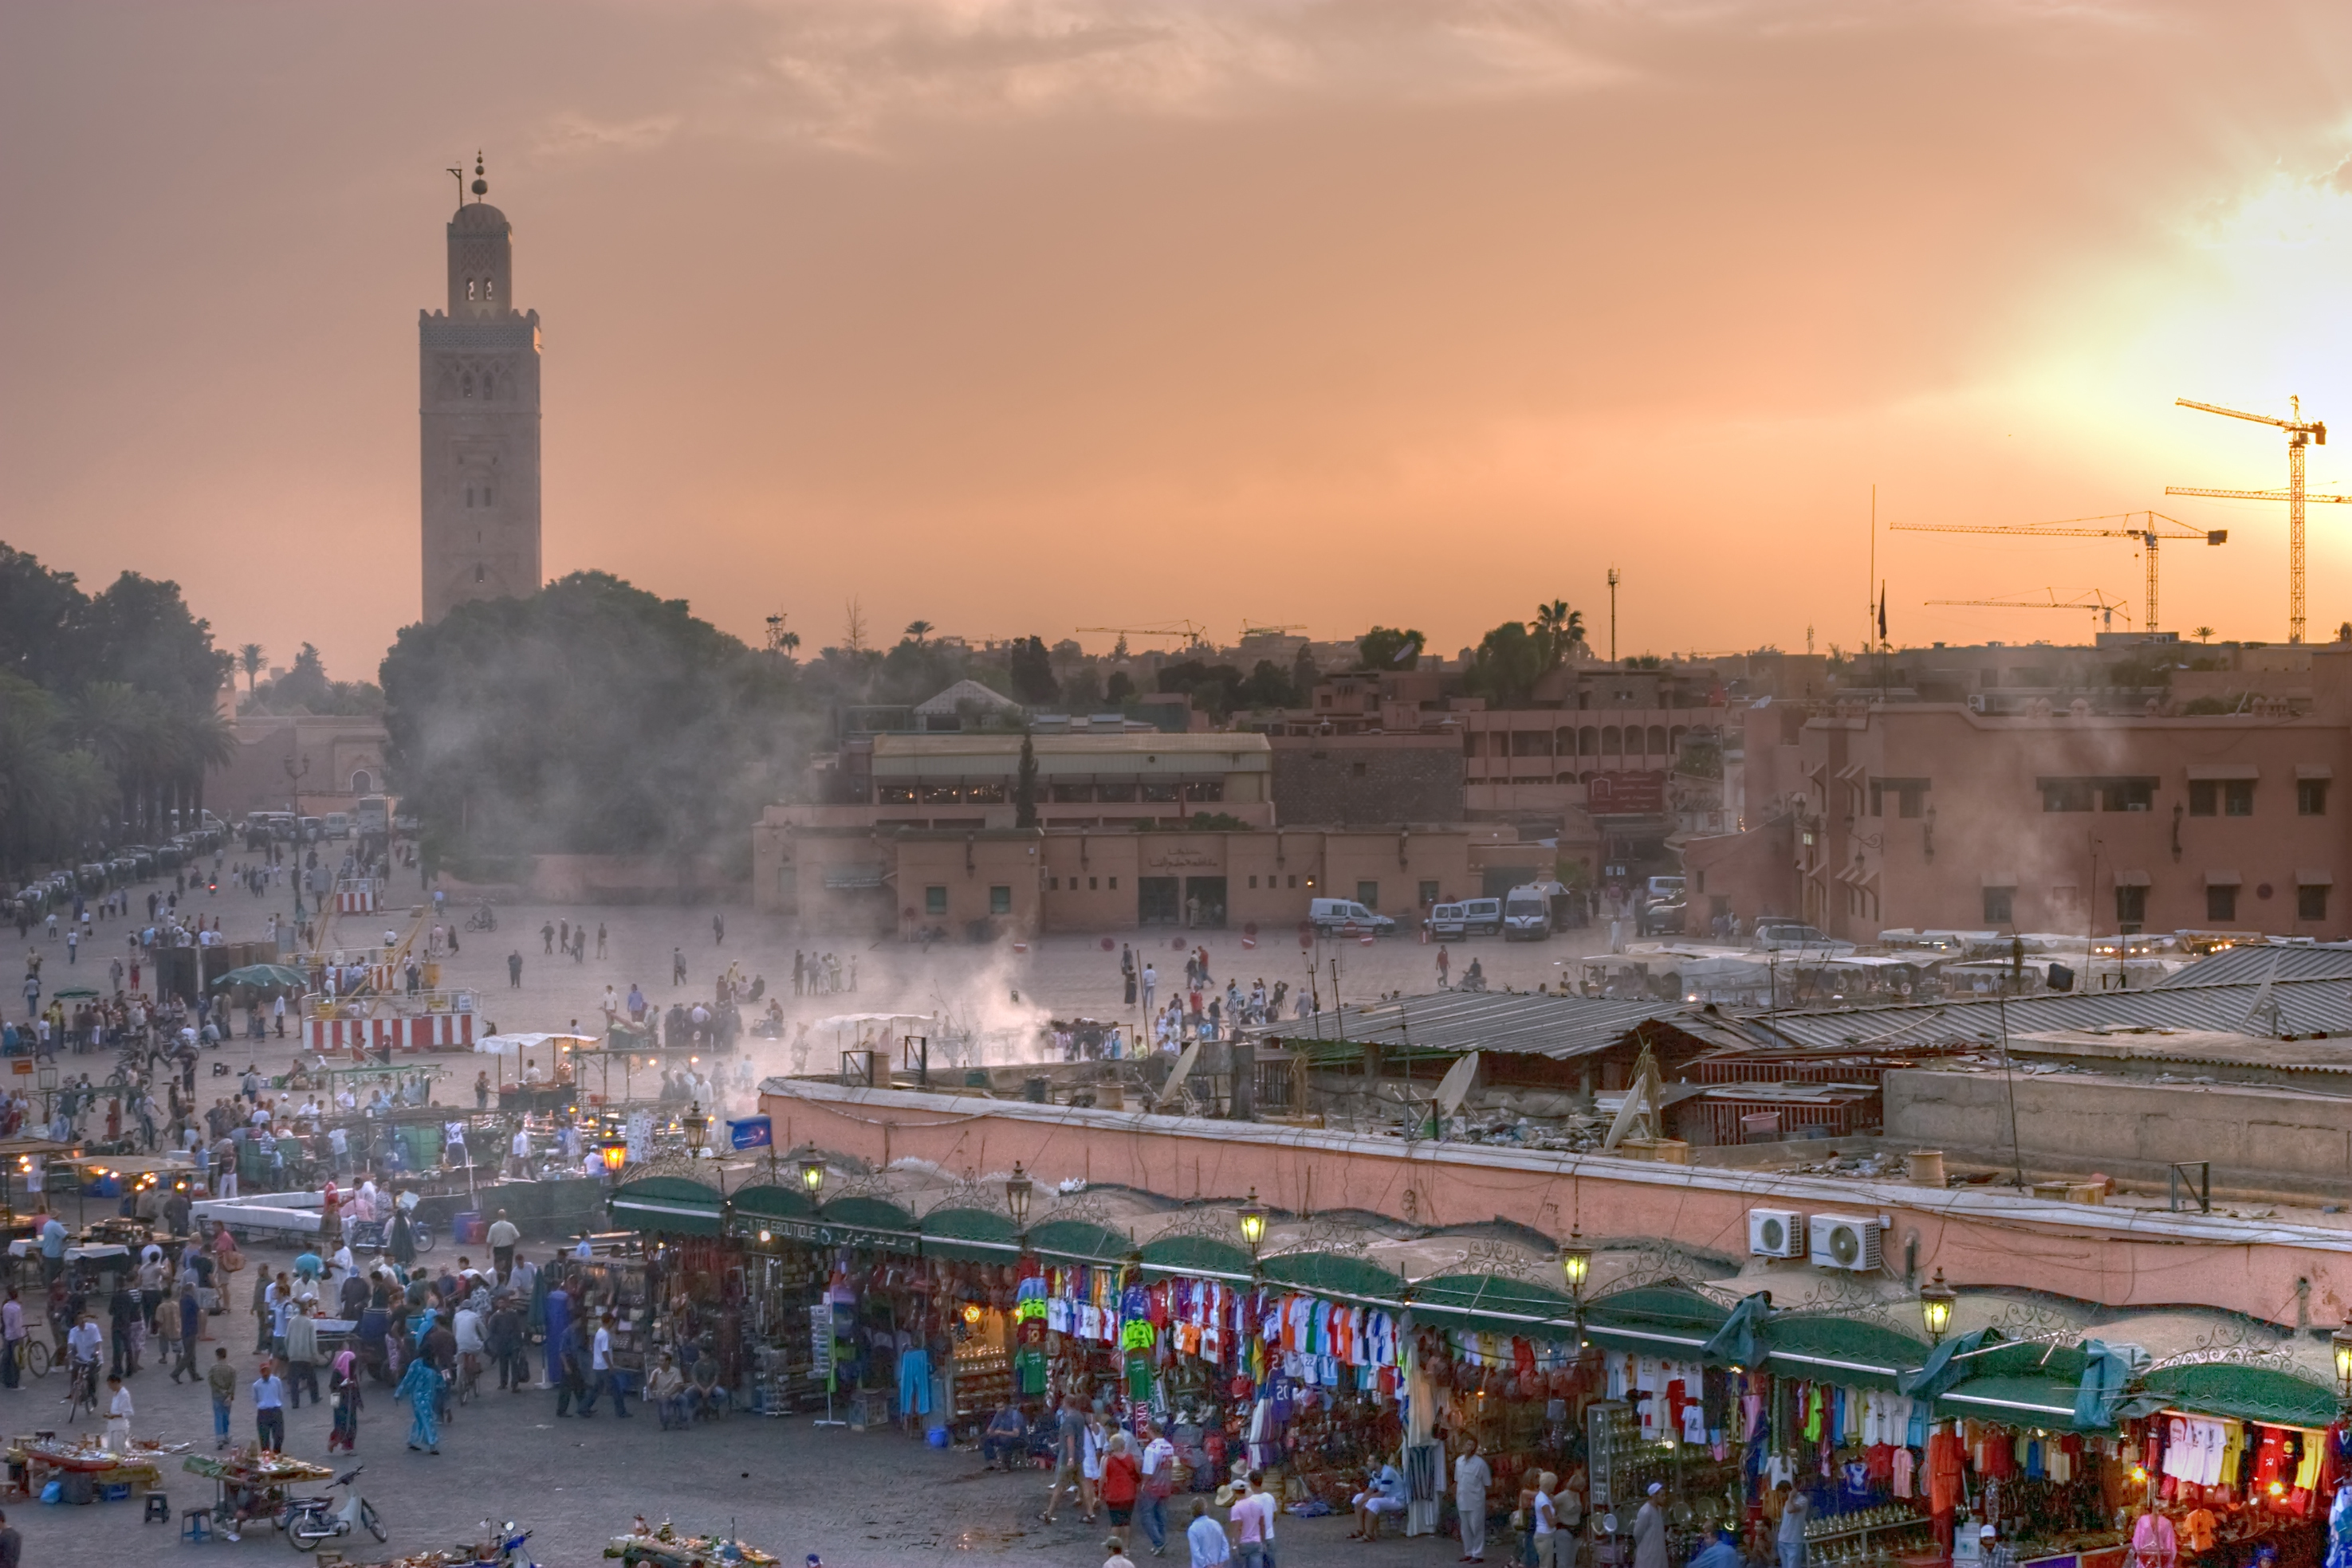 Jemaa el Fna square, the heart of the red city